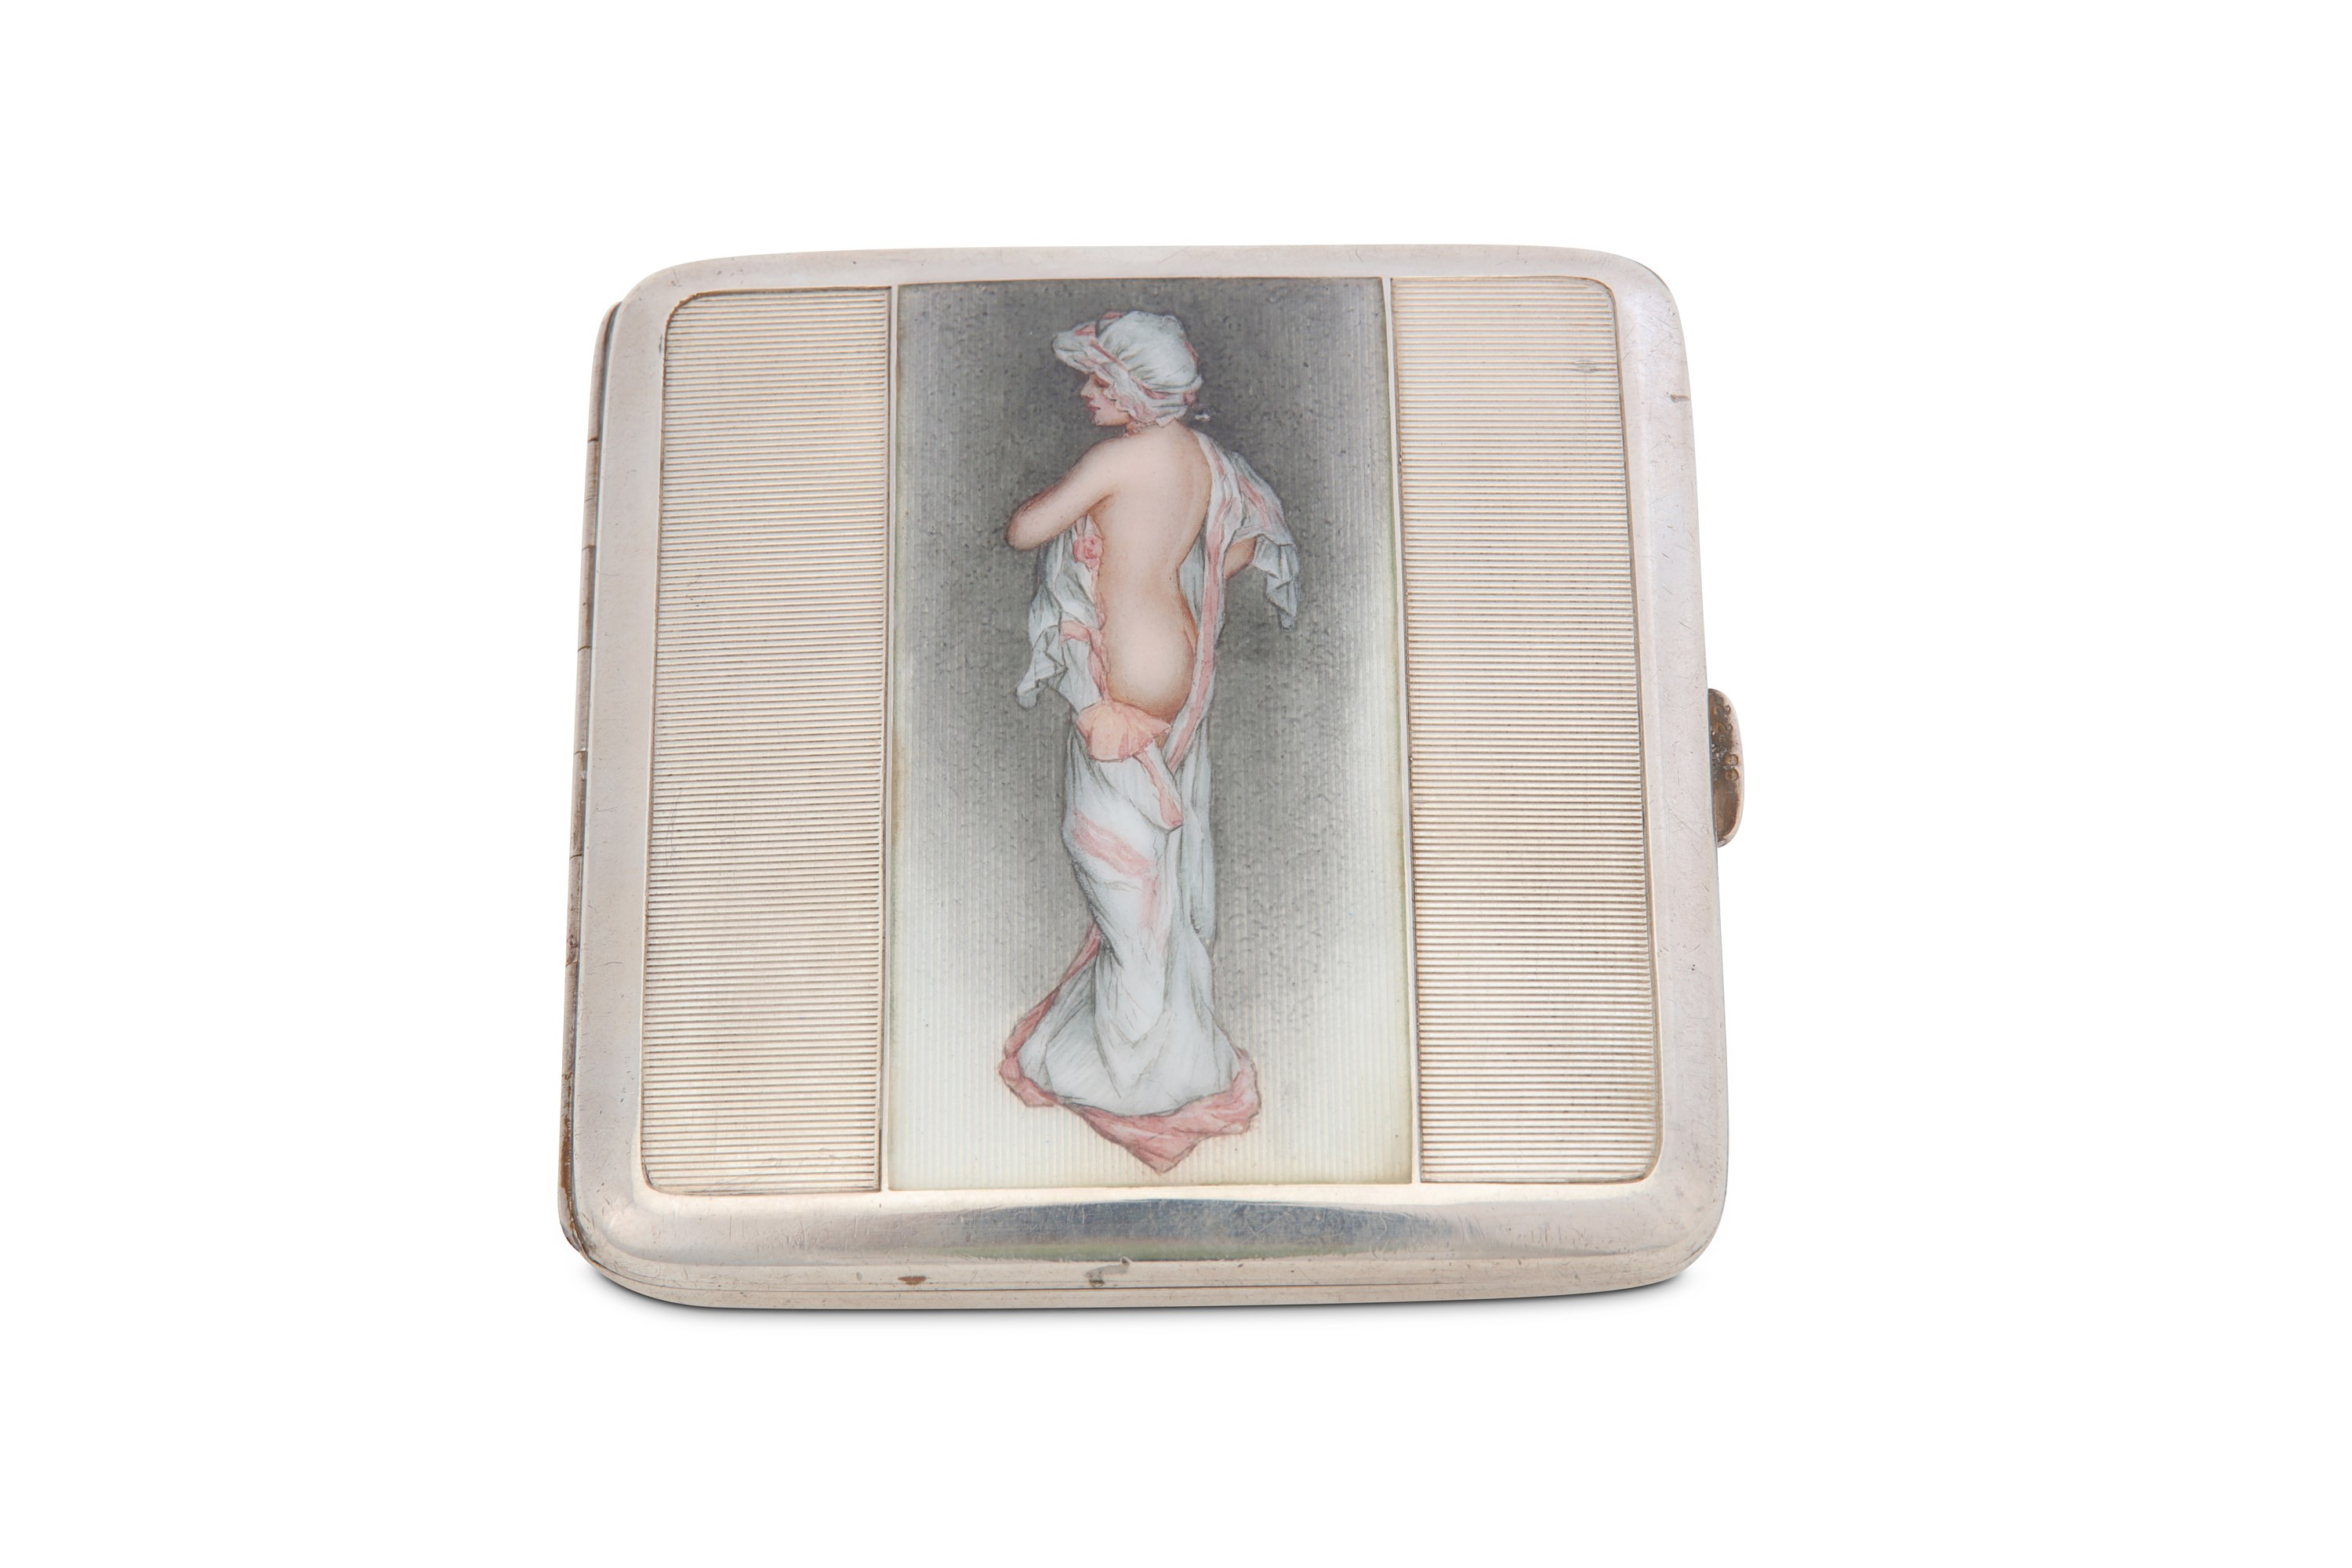 Lot 18 - An early 20th century Austrian Art Deco 900 standard silver and enamel cigarette case, Vienna circa